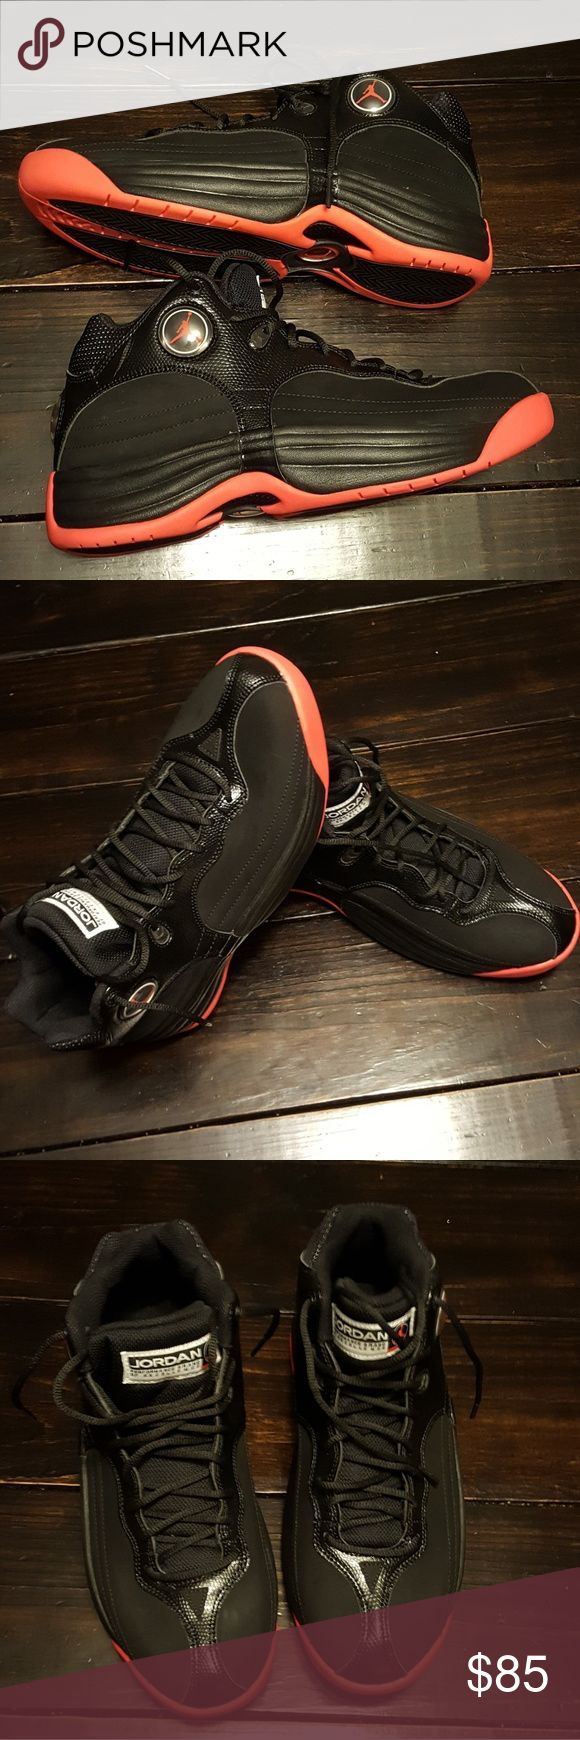 New Jordan Jumpman team 1 new jordan jumpman team 1 infraced 23 black and grey ,see the photos for more details. Jordan Shoes Sneakers